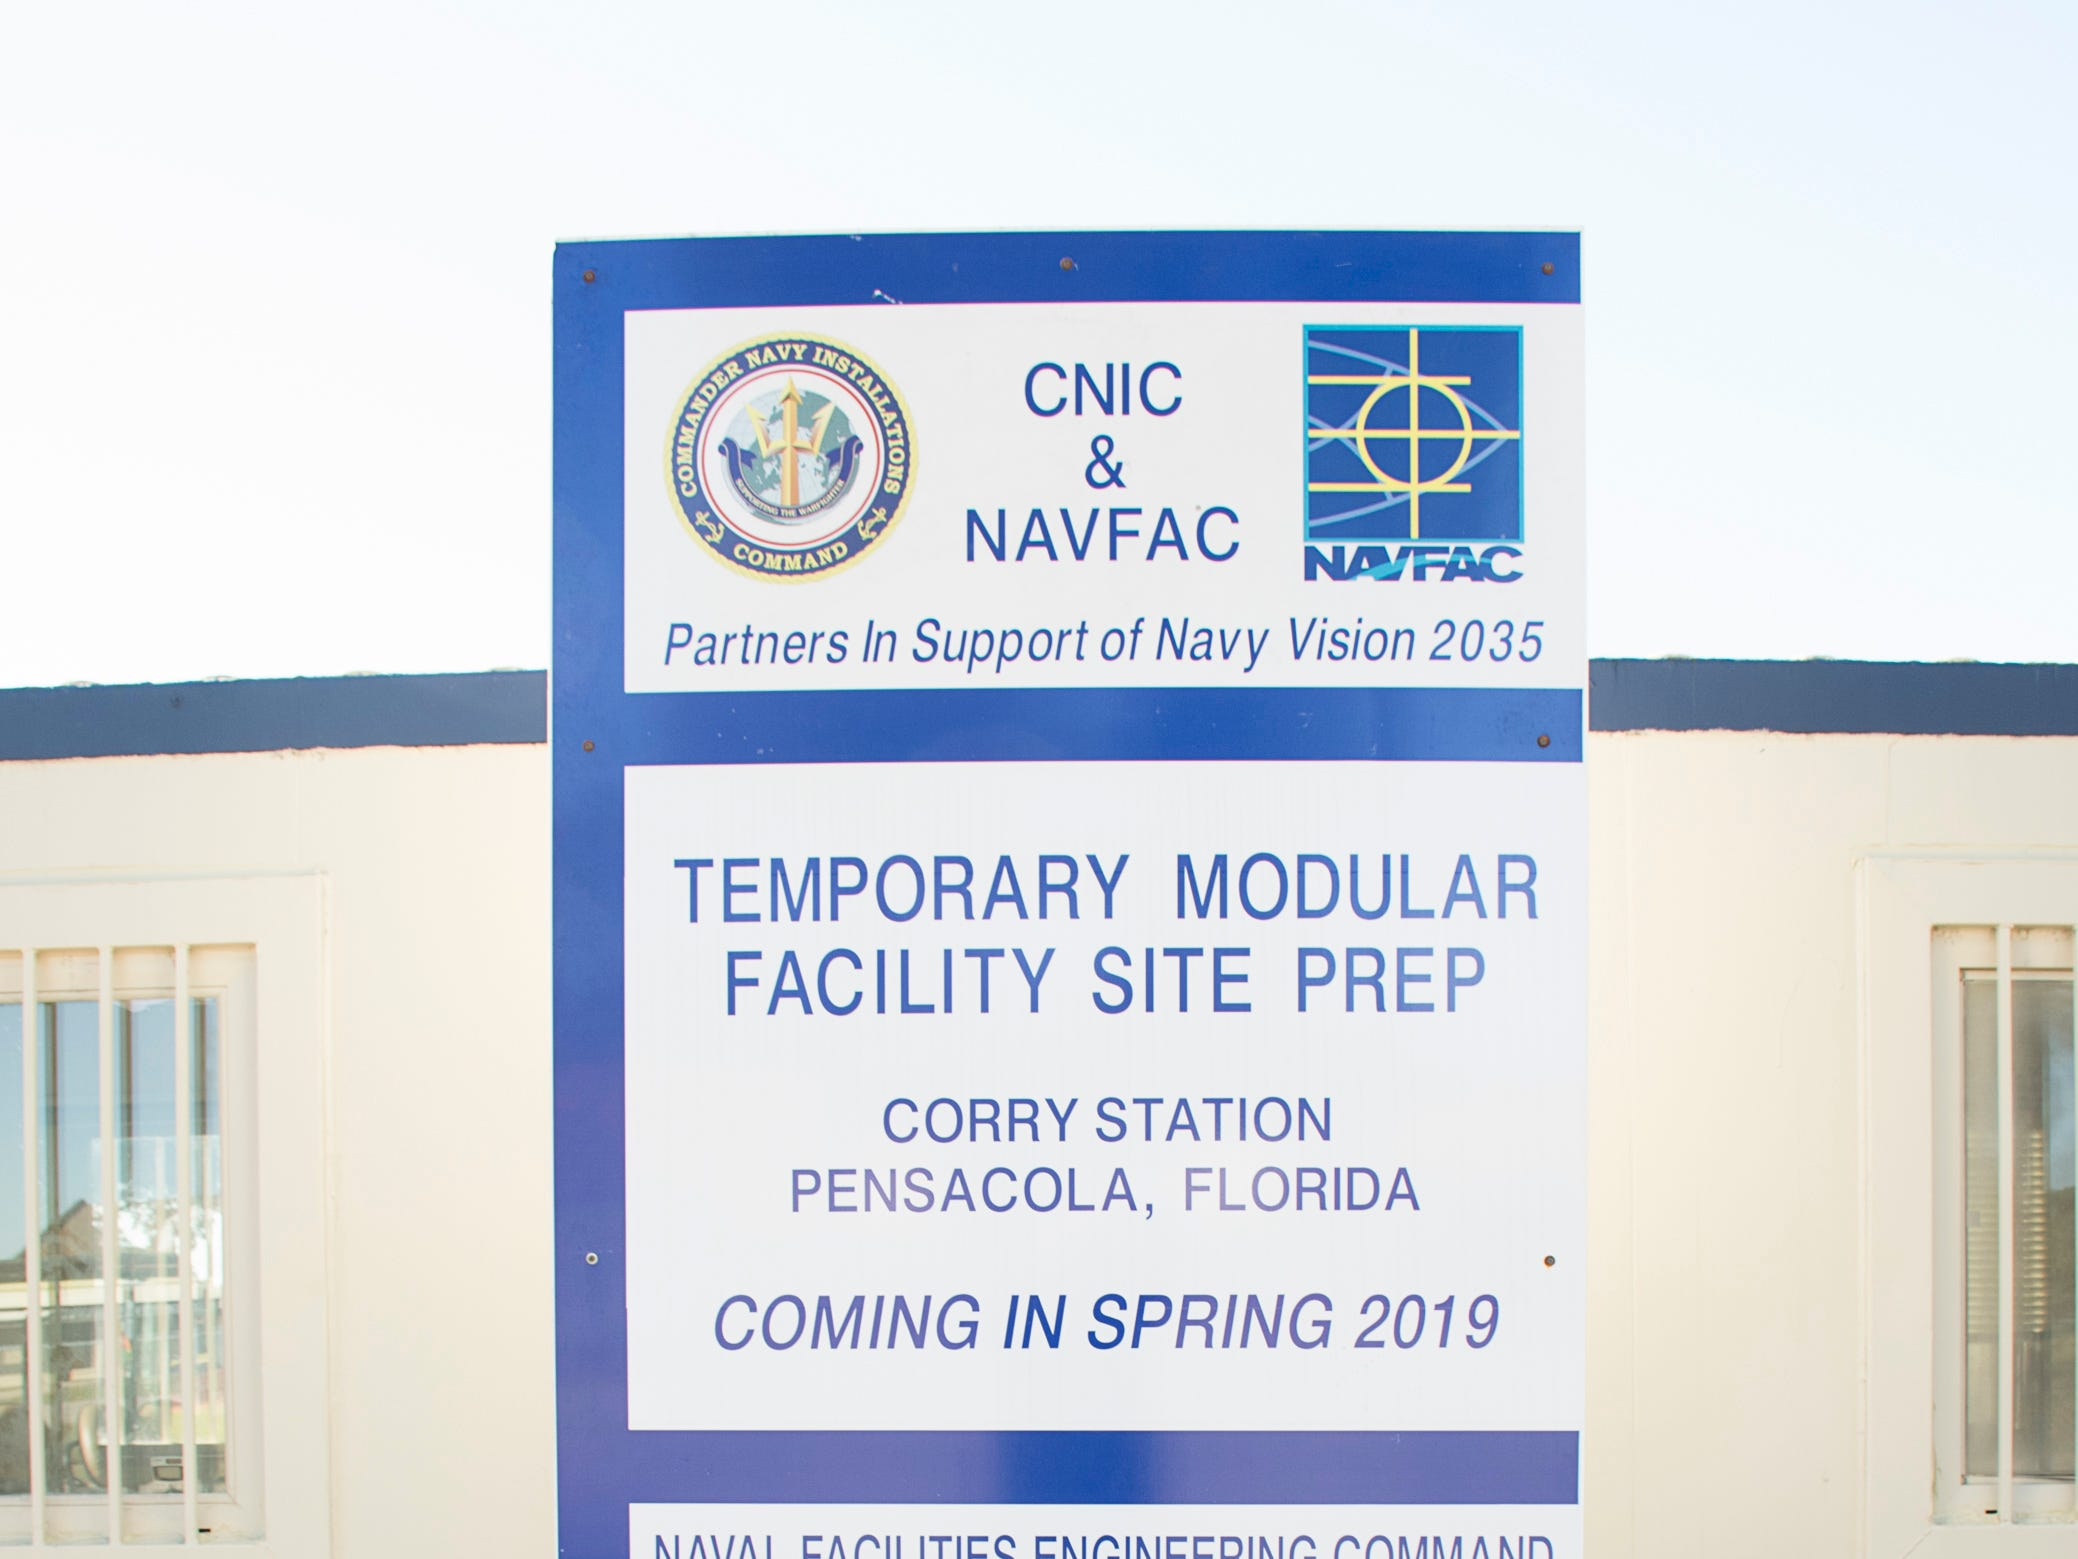 Construction of temporary modular facilities is underway at NAS Pensacola Corry Station in Pensacola on Thursday, January 10, 2019.